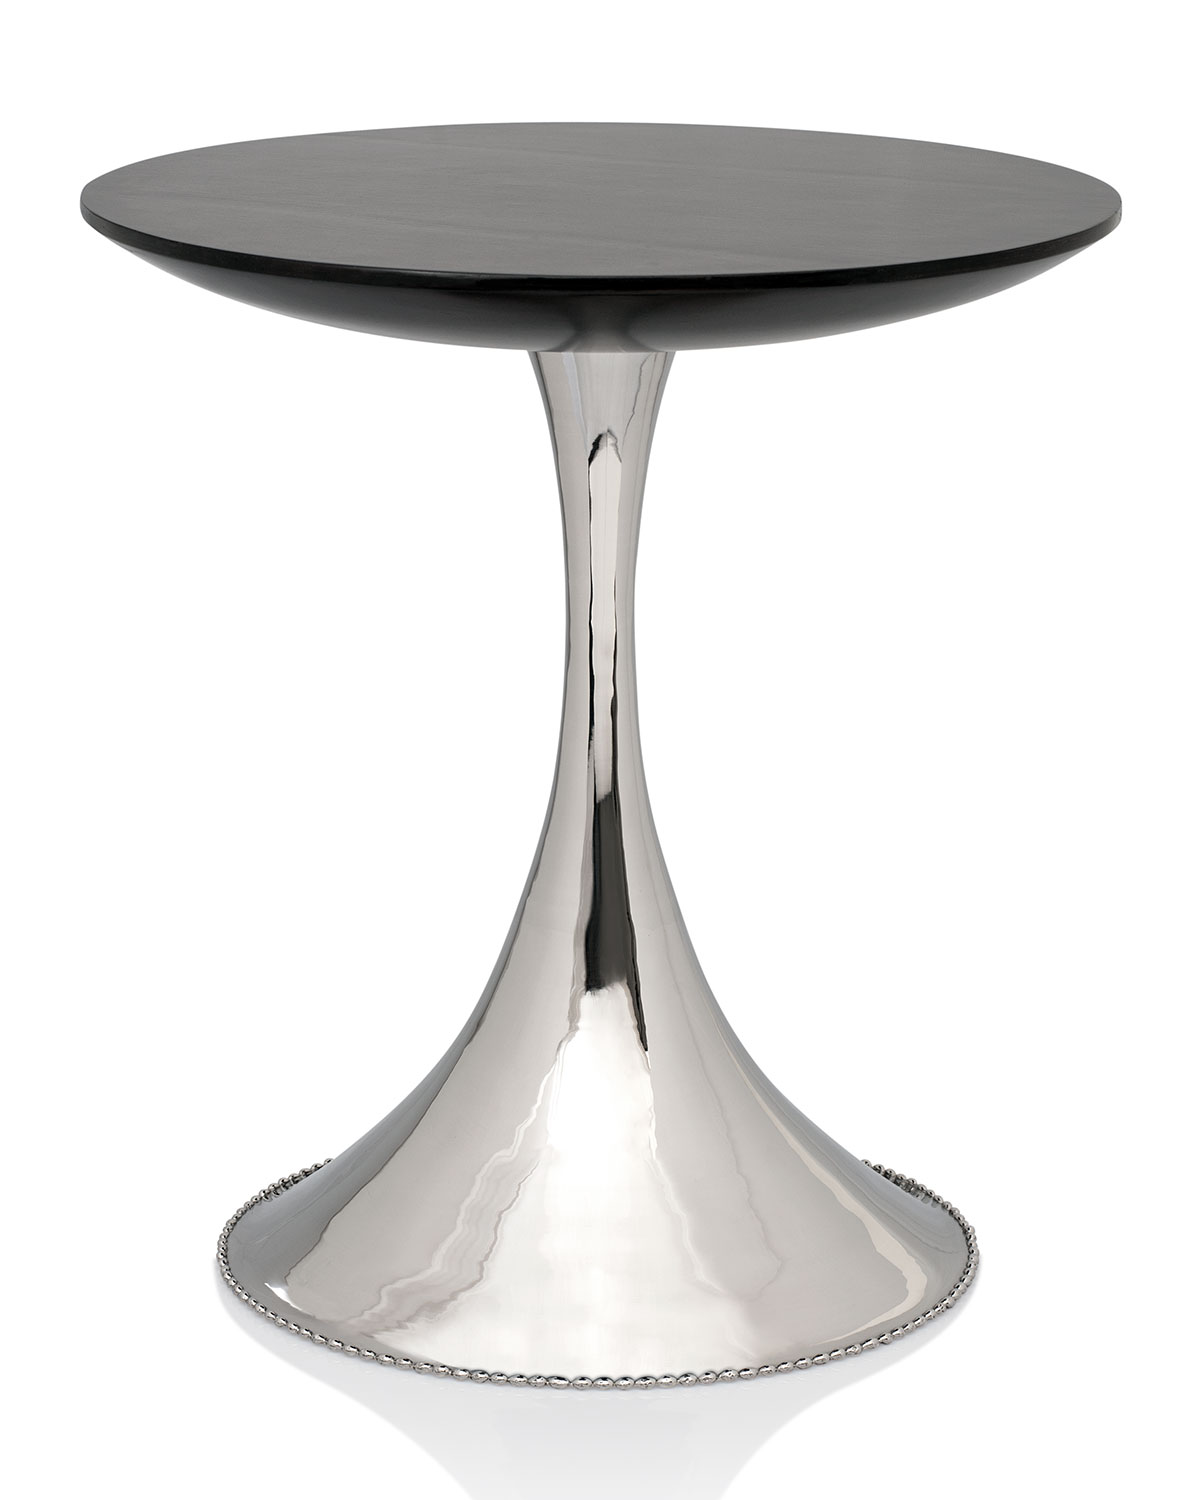 michael aram molten accent table neiman marcus small round patio glass bedside lamps kitchen unfinished furniture mosaic garden very narrow modern brass lamp top metal end palm